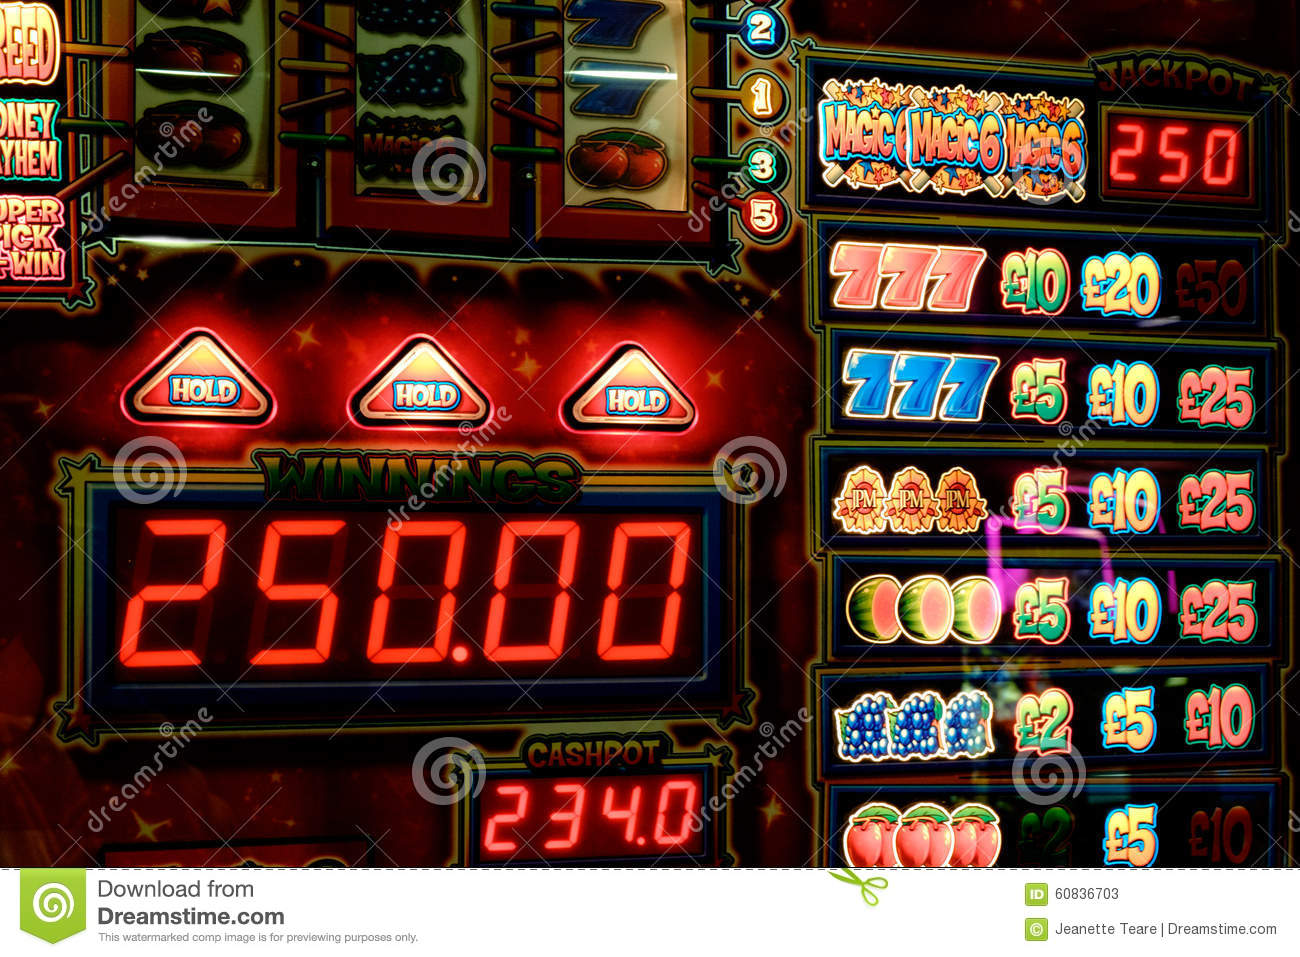 how to win on gambling machines uk